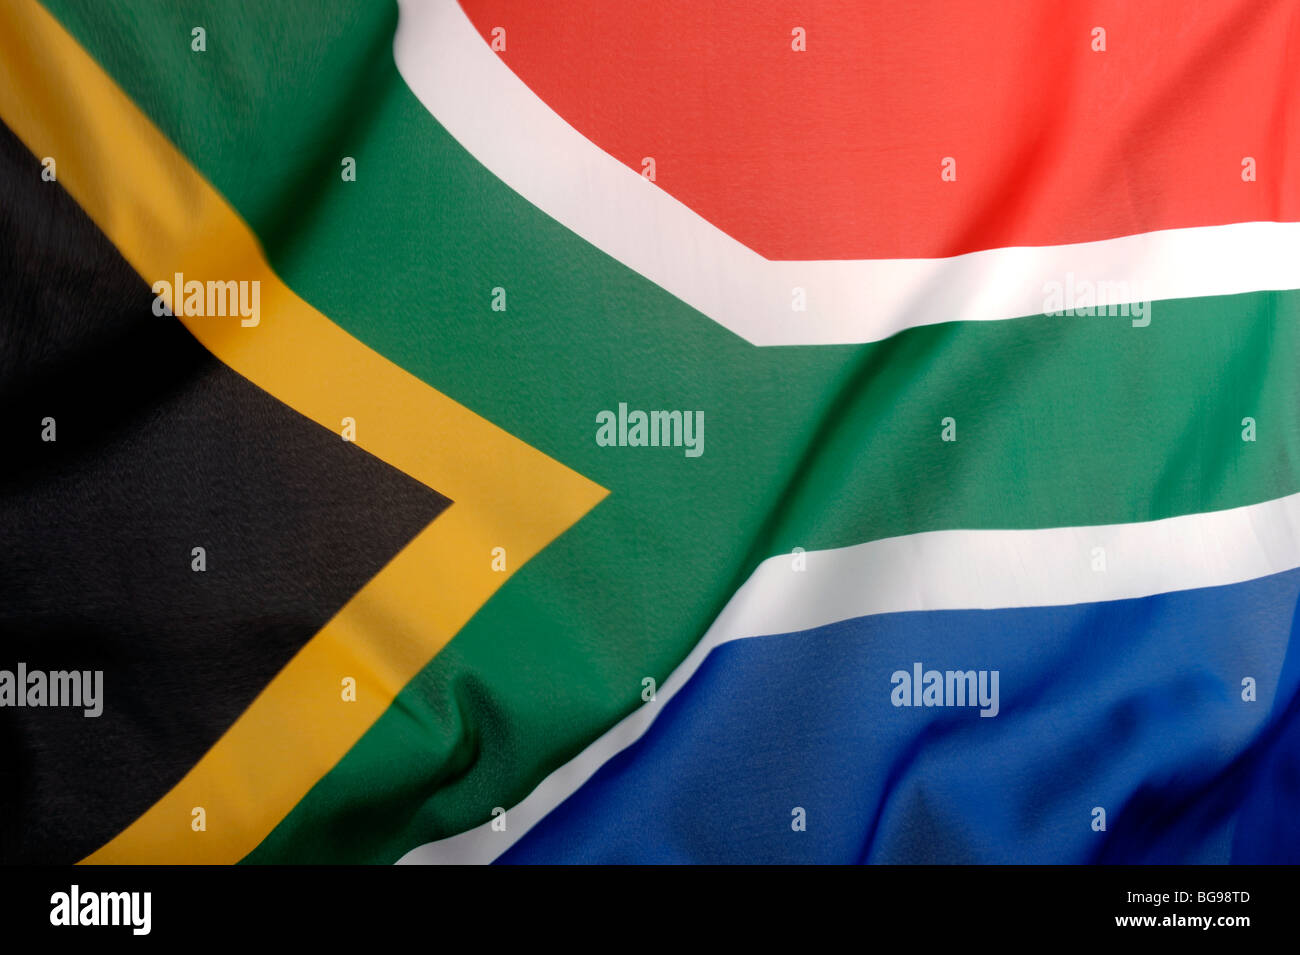 South Africa flag - Stock Image